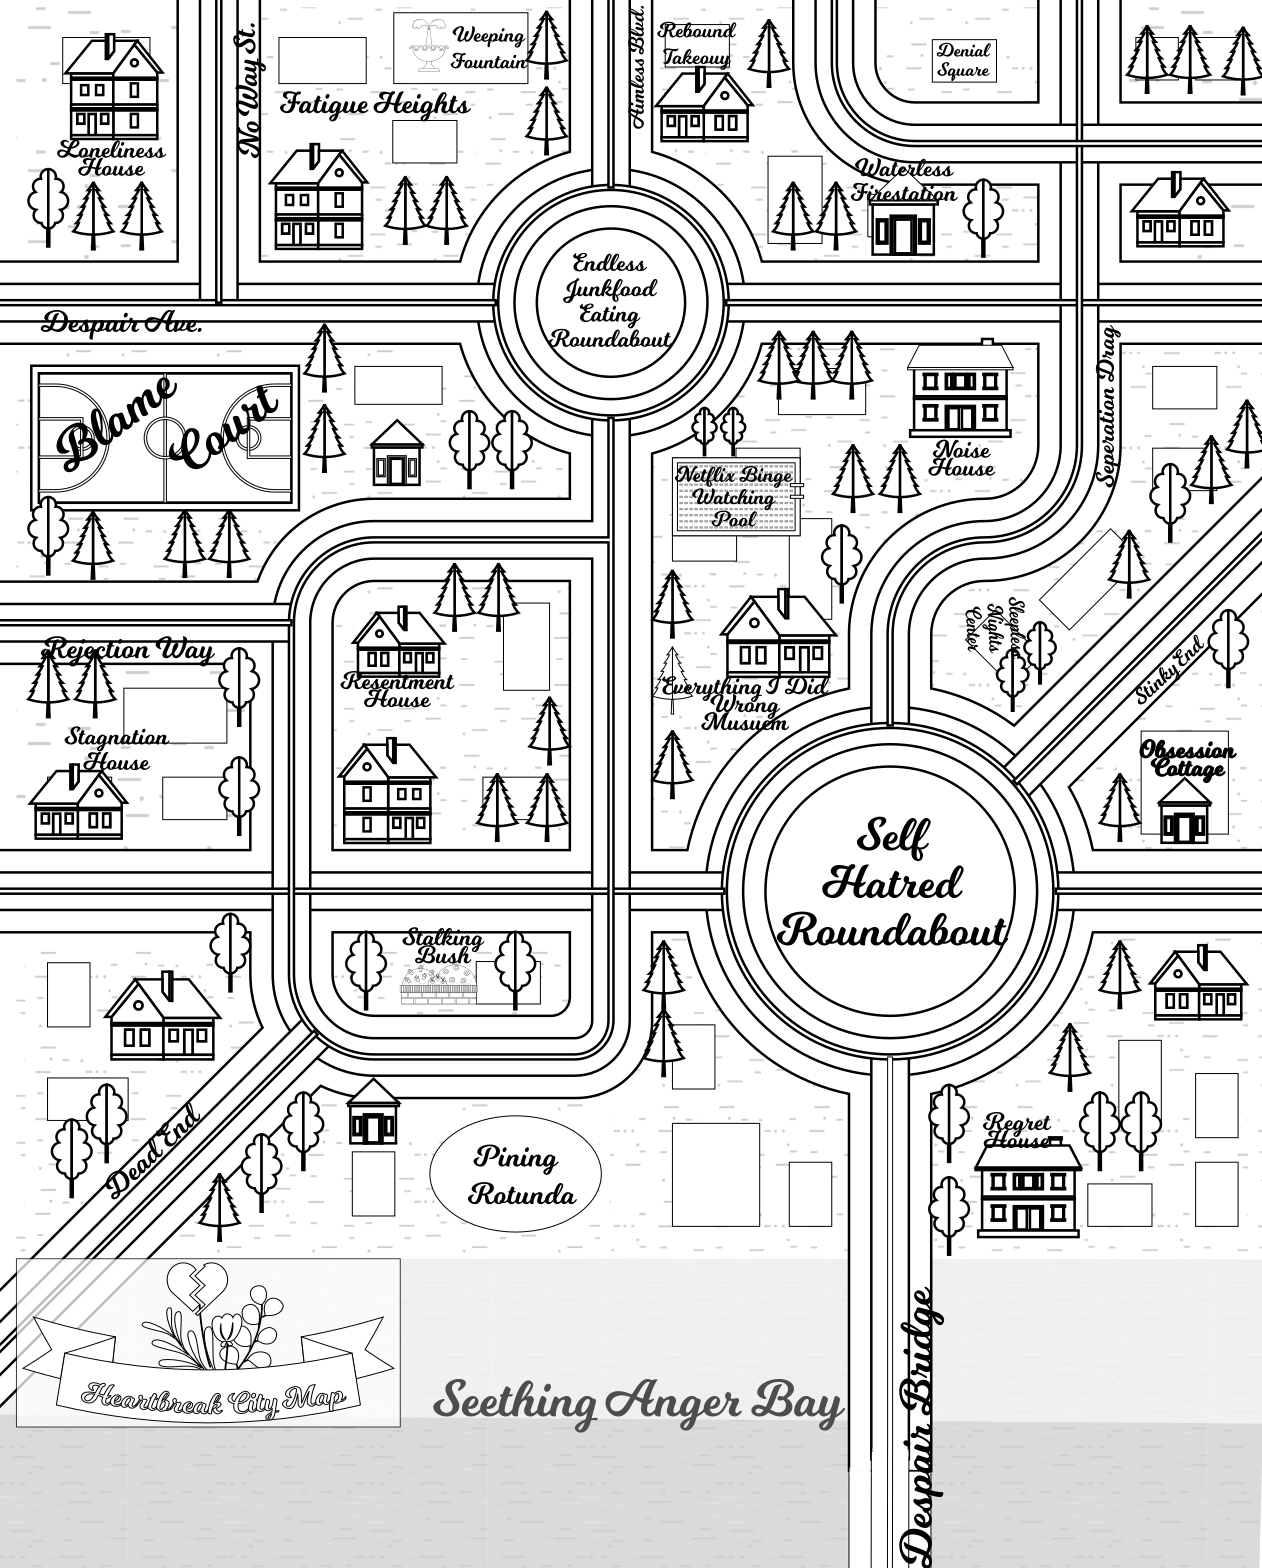 City Coloring Pages | Coloringnori - Coloring Pages for Kids